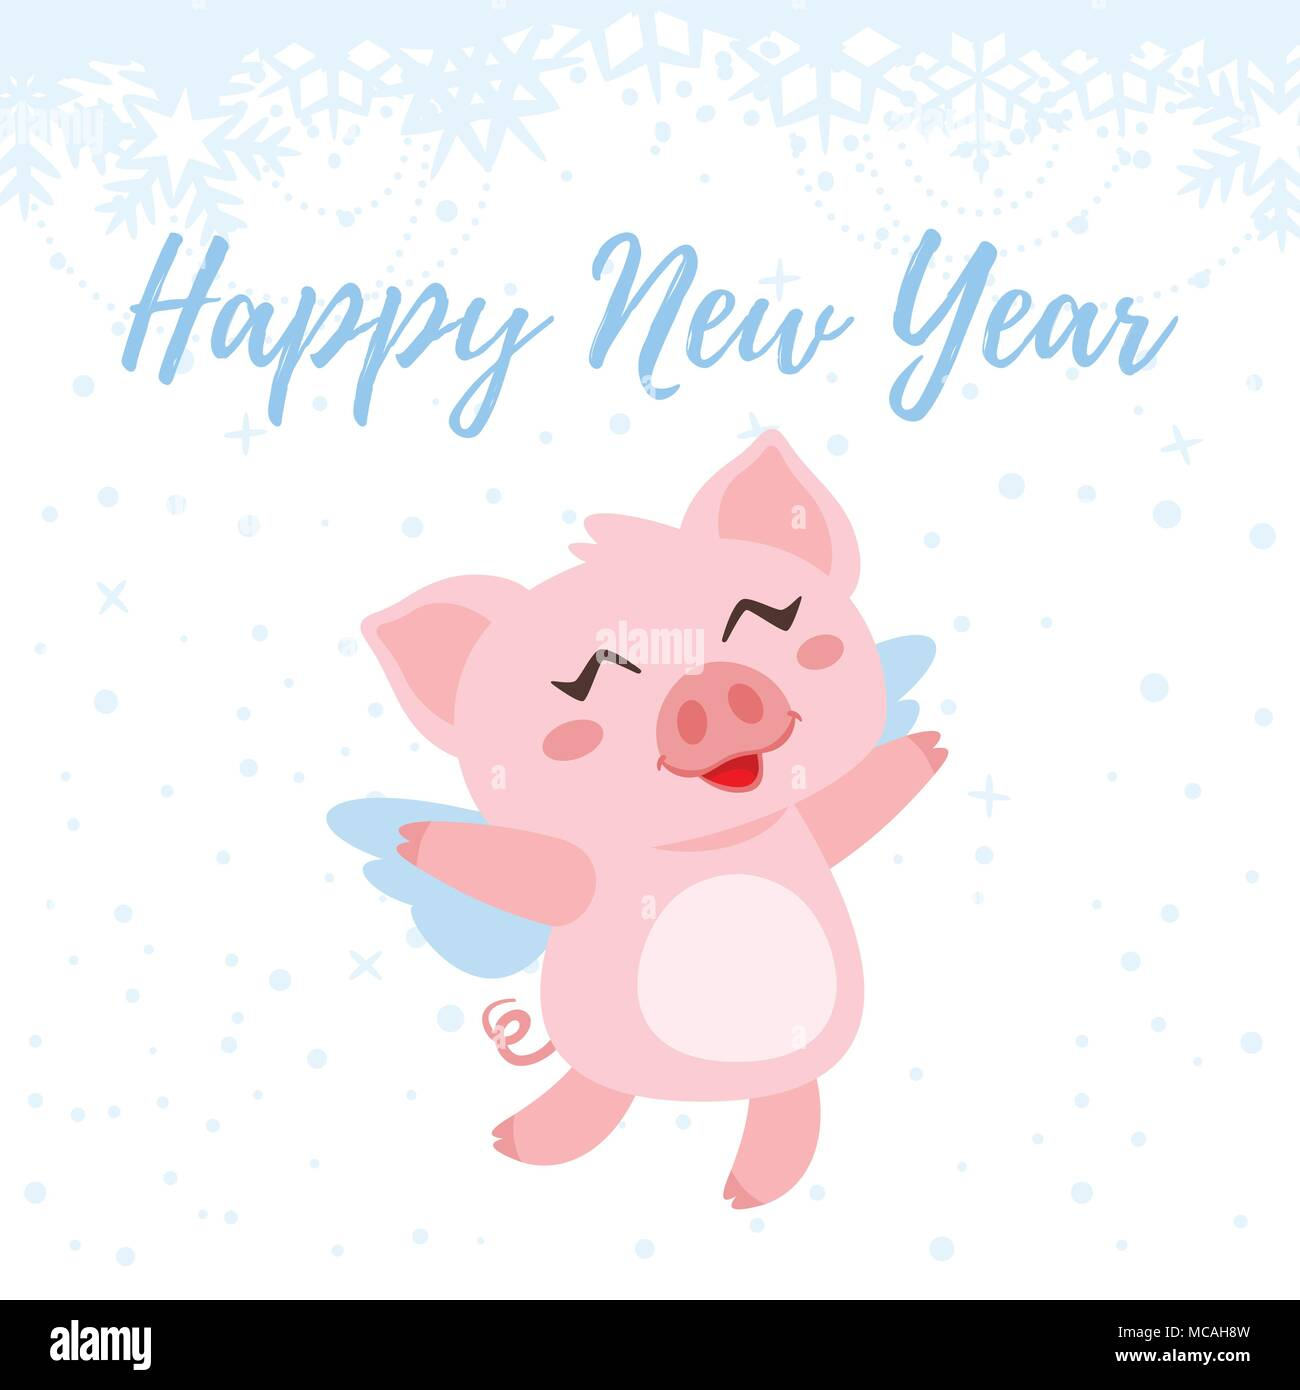 vector cartoon style illustration of happy 2019 new year greeting card with cute pink pig flying in the sky isolated on white background with snowfla